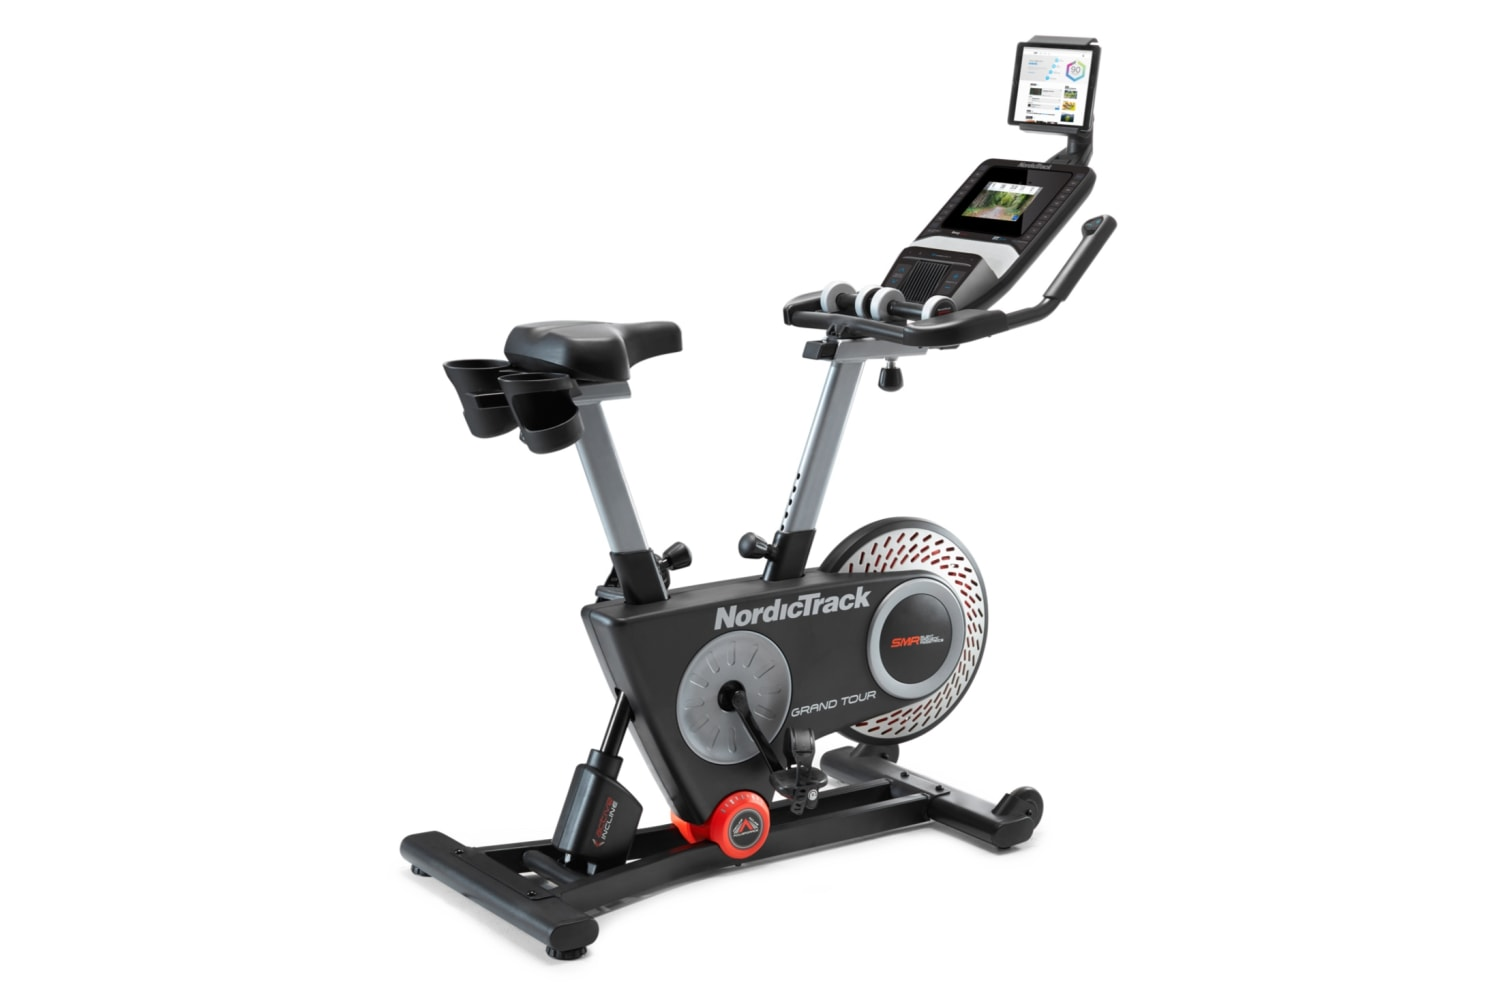 NordicTrack Grand Tour iFit Exercise Bike